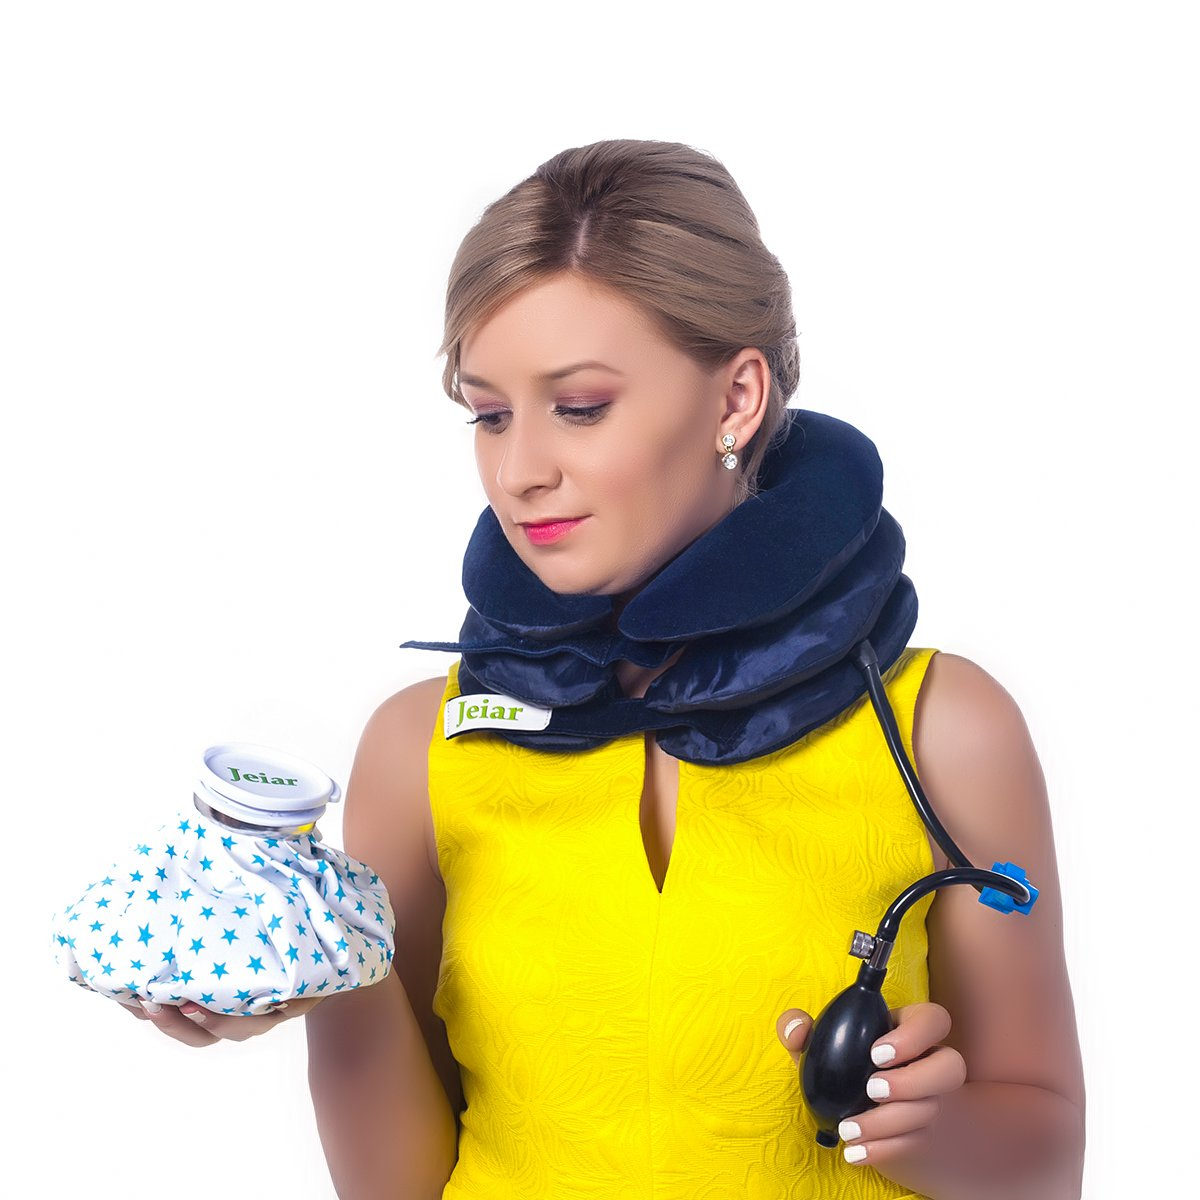 Jeiar Cervical Traction Device - Inflatable & Adjustable for Best Spinal Decompression Stretch for The Neck in The Home + Water Bag - Great Remedy to Relieve Neck, Head and Shoulder Pain